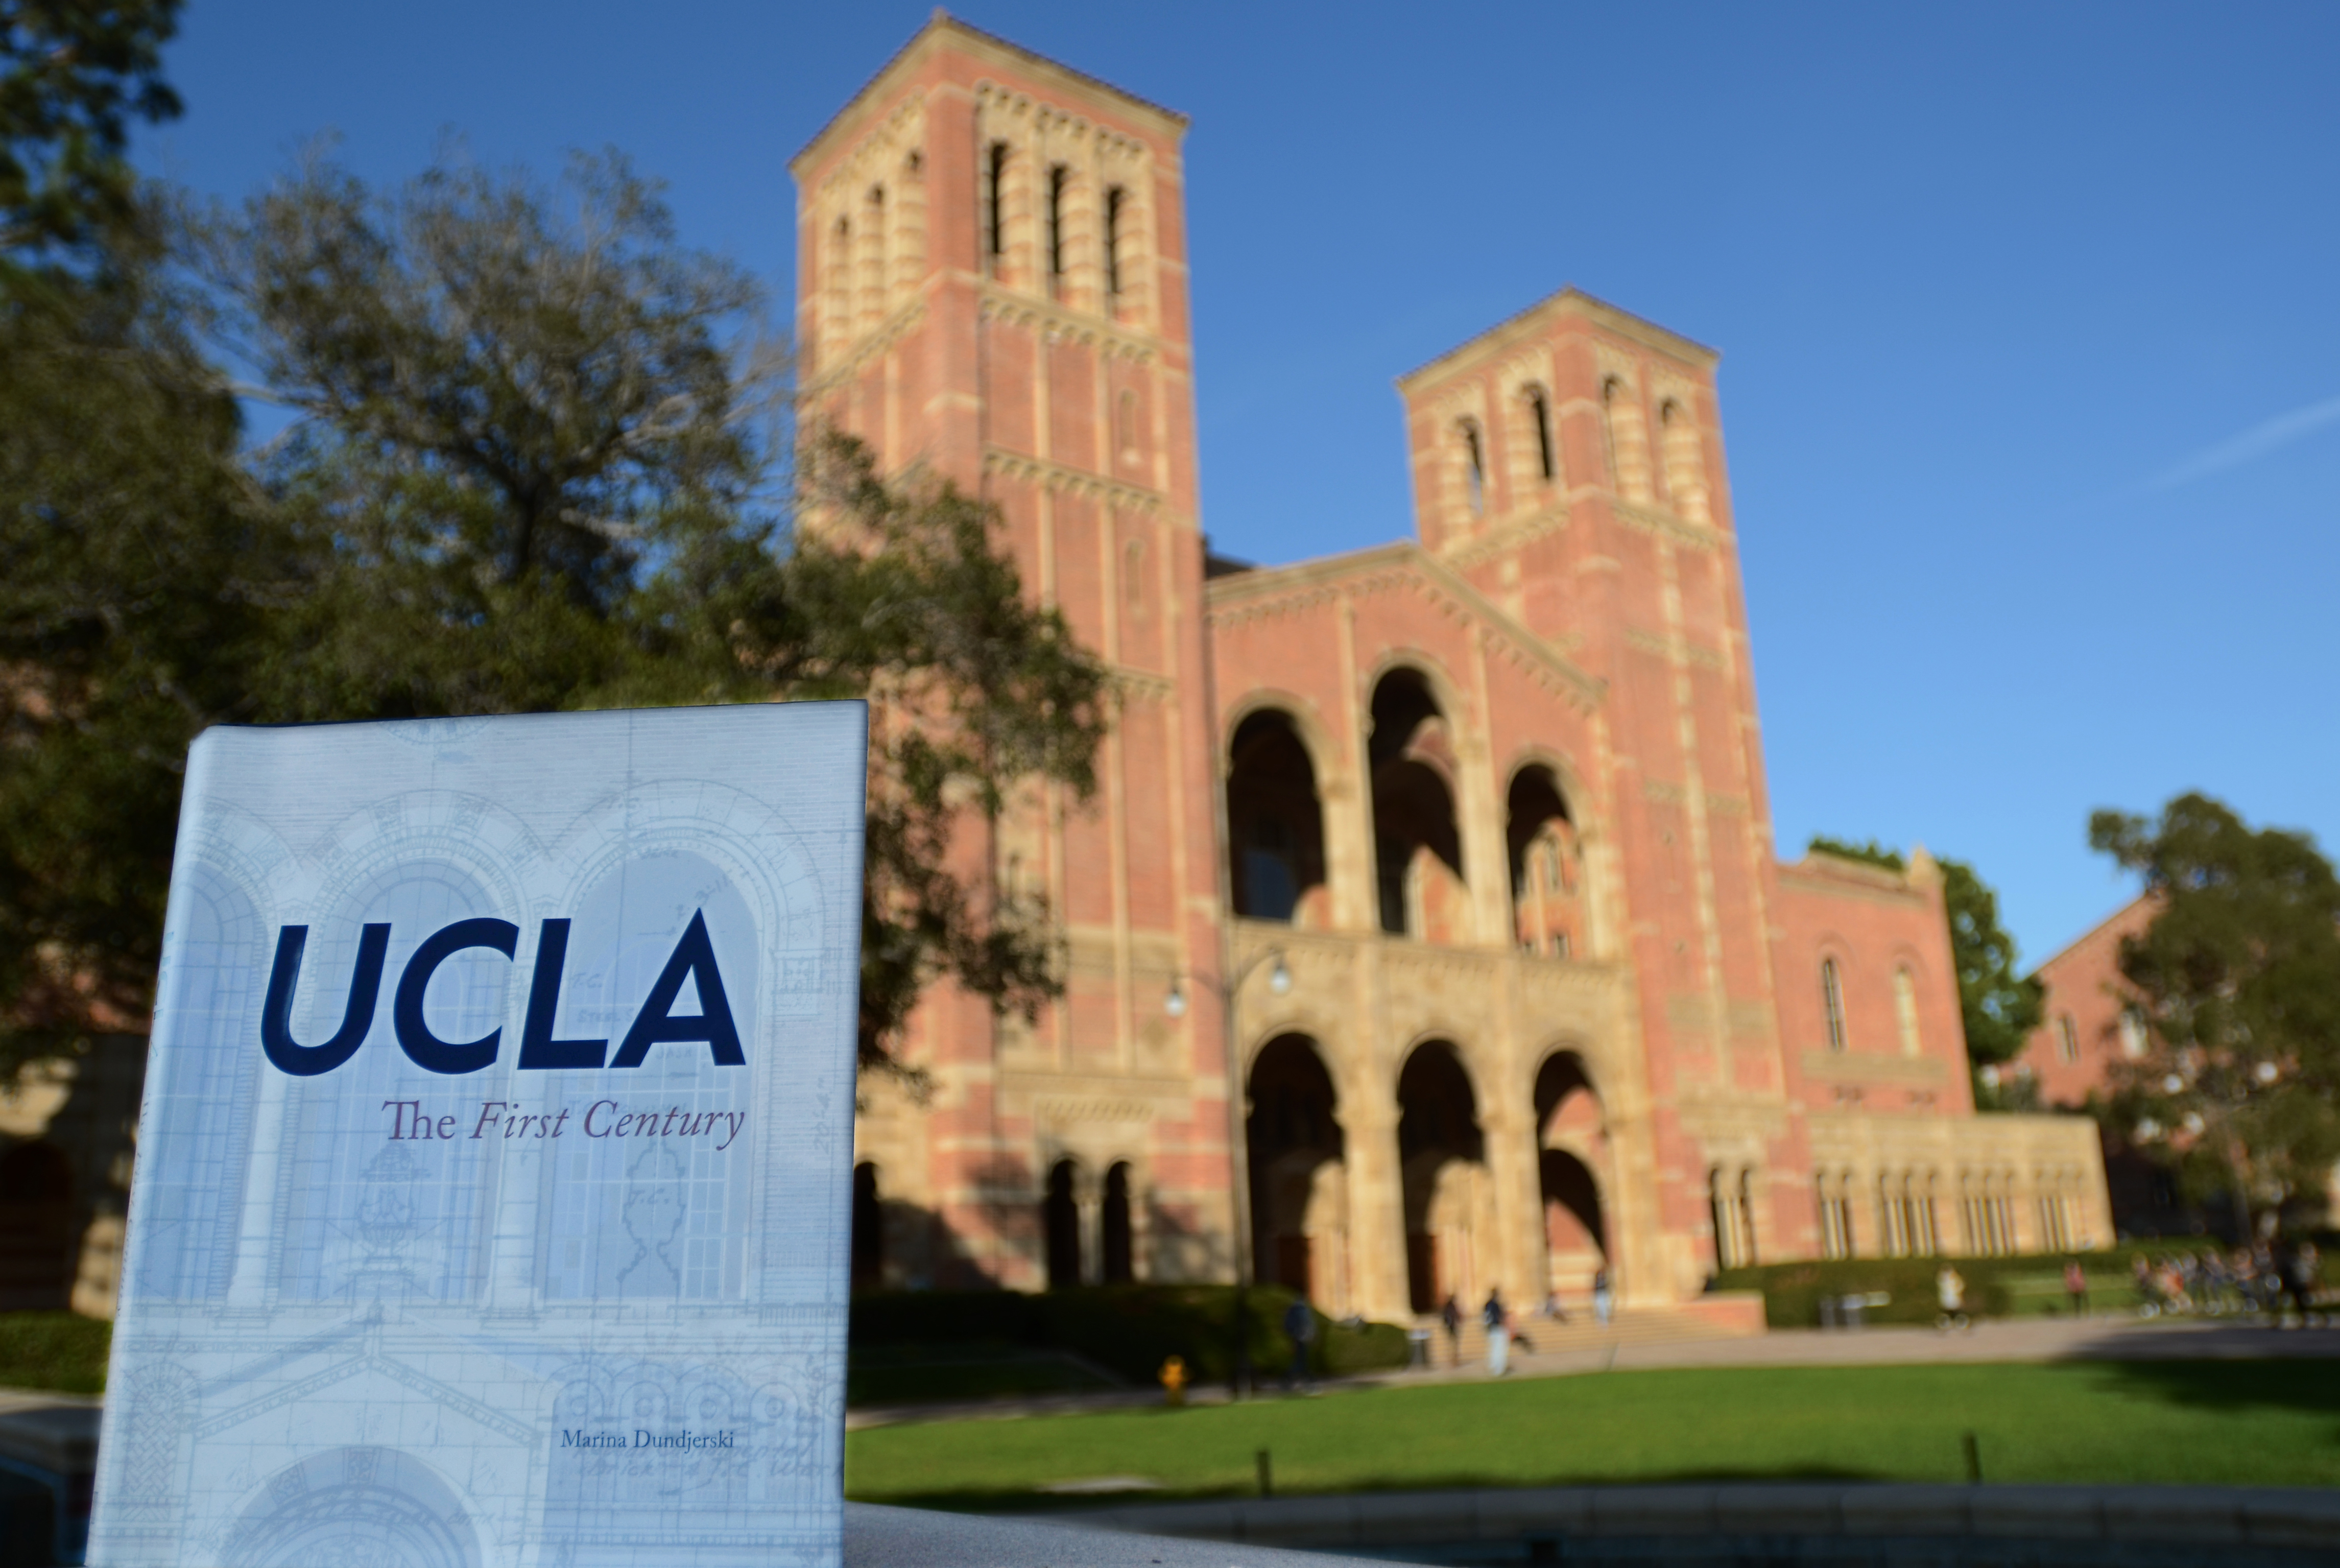 ldb s ucla student leaders and attorneys urge action following